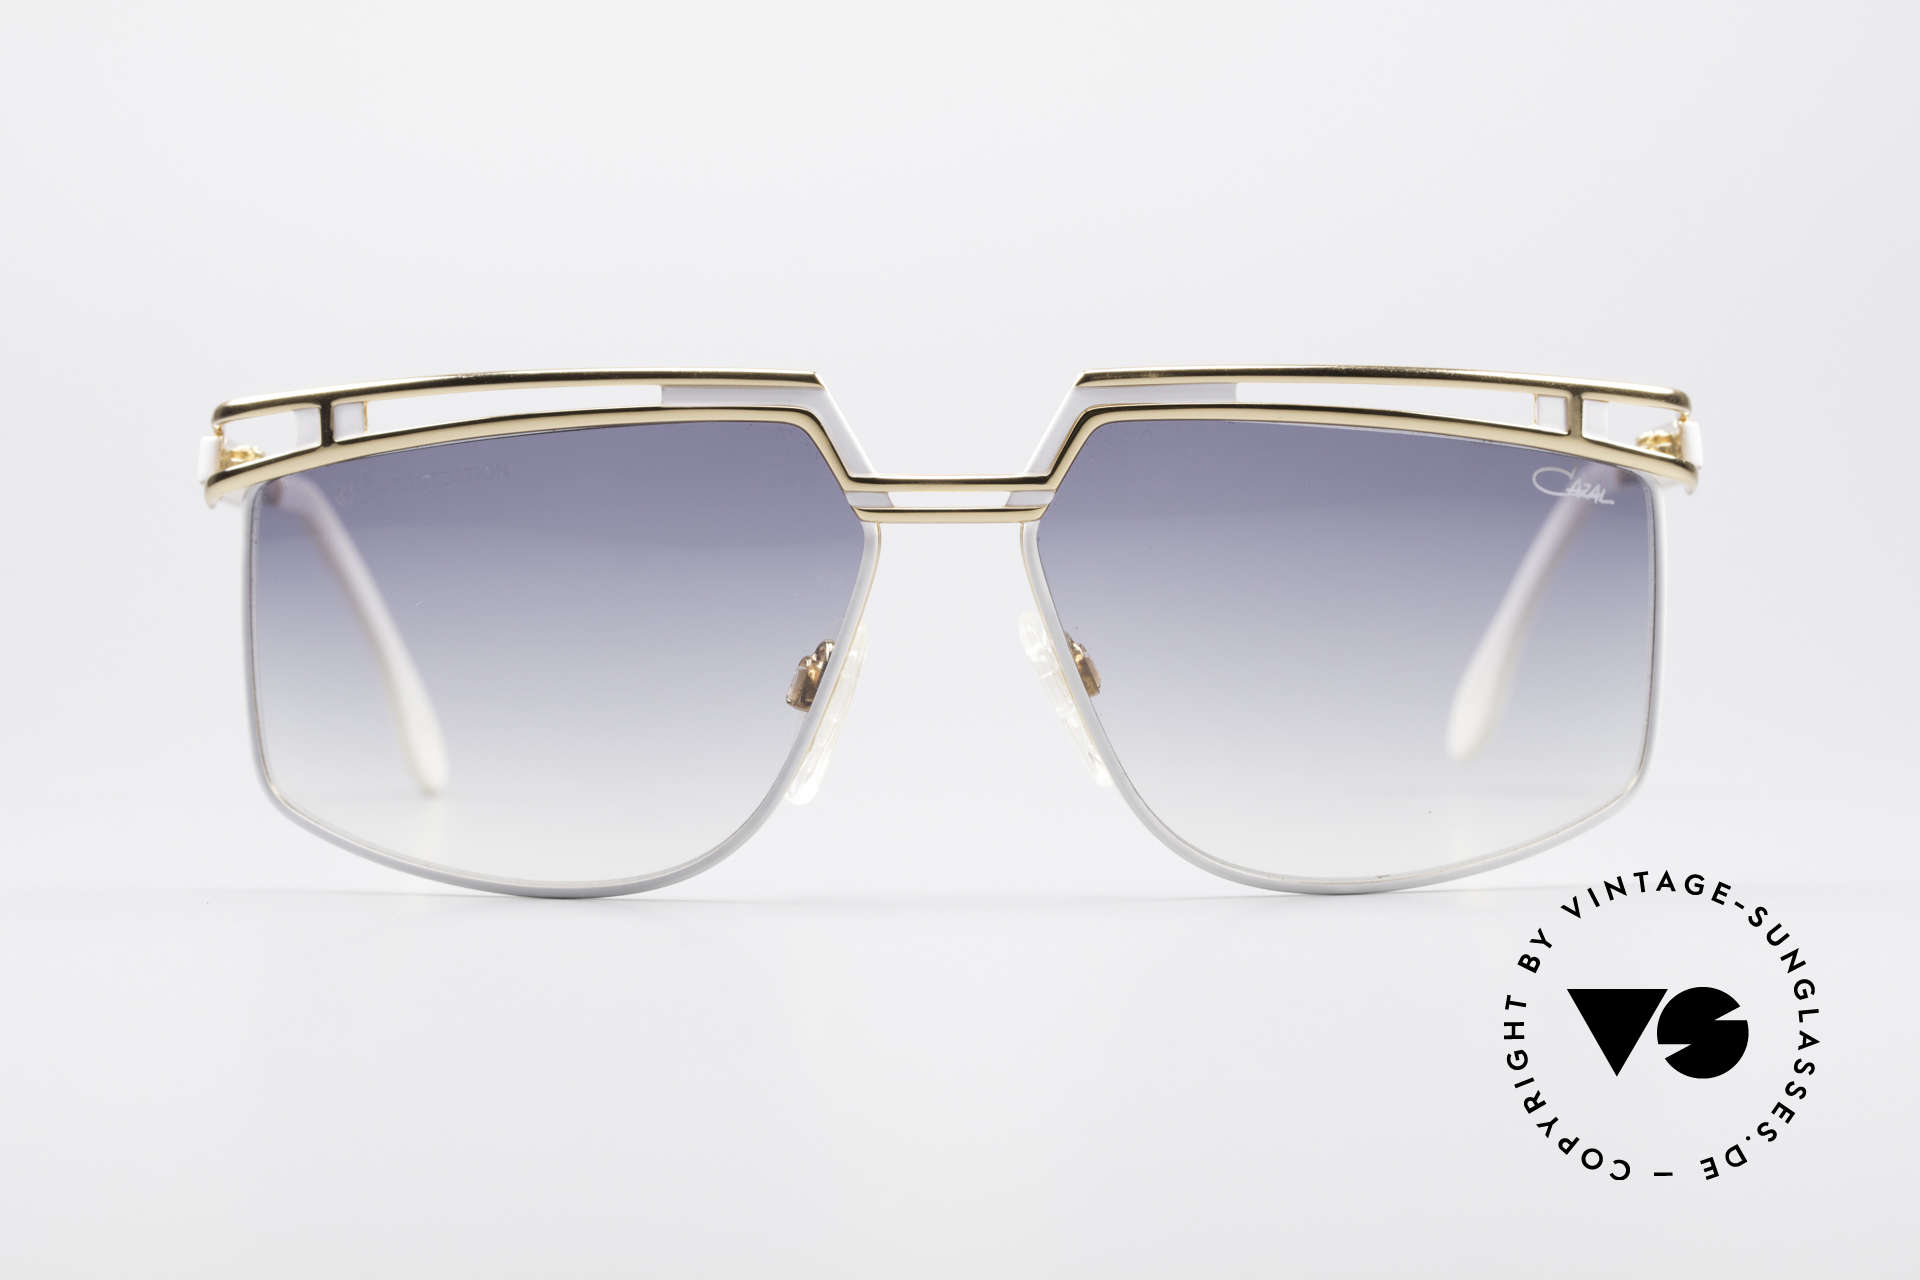 Cazal 957 XLarge HipHop Vintage Shades, mod. 957 was made from 1988-1992 in Passau, Bavaria, Made for Men and Women